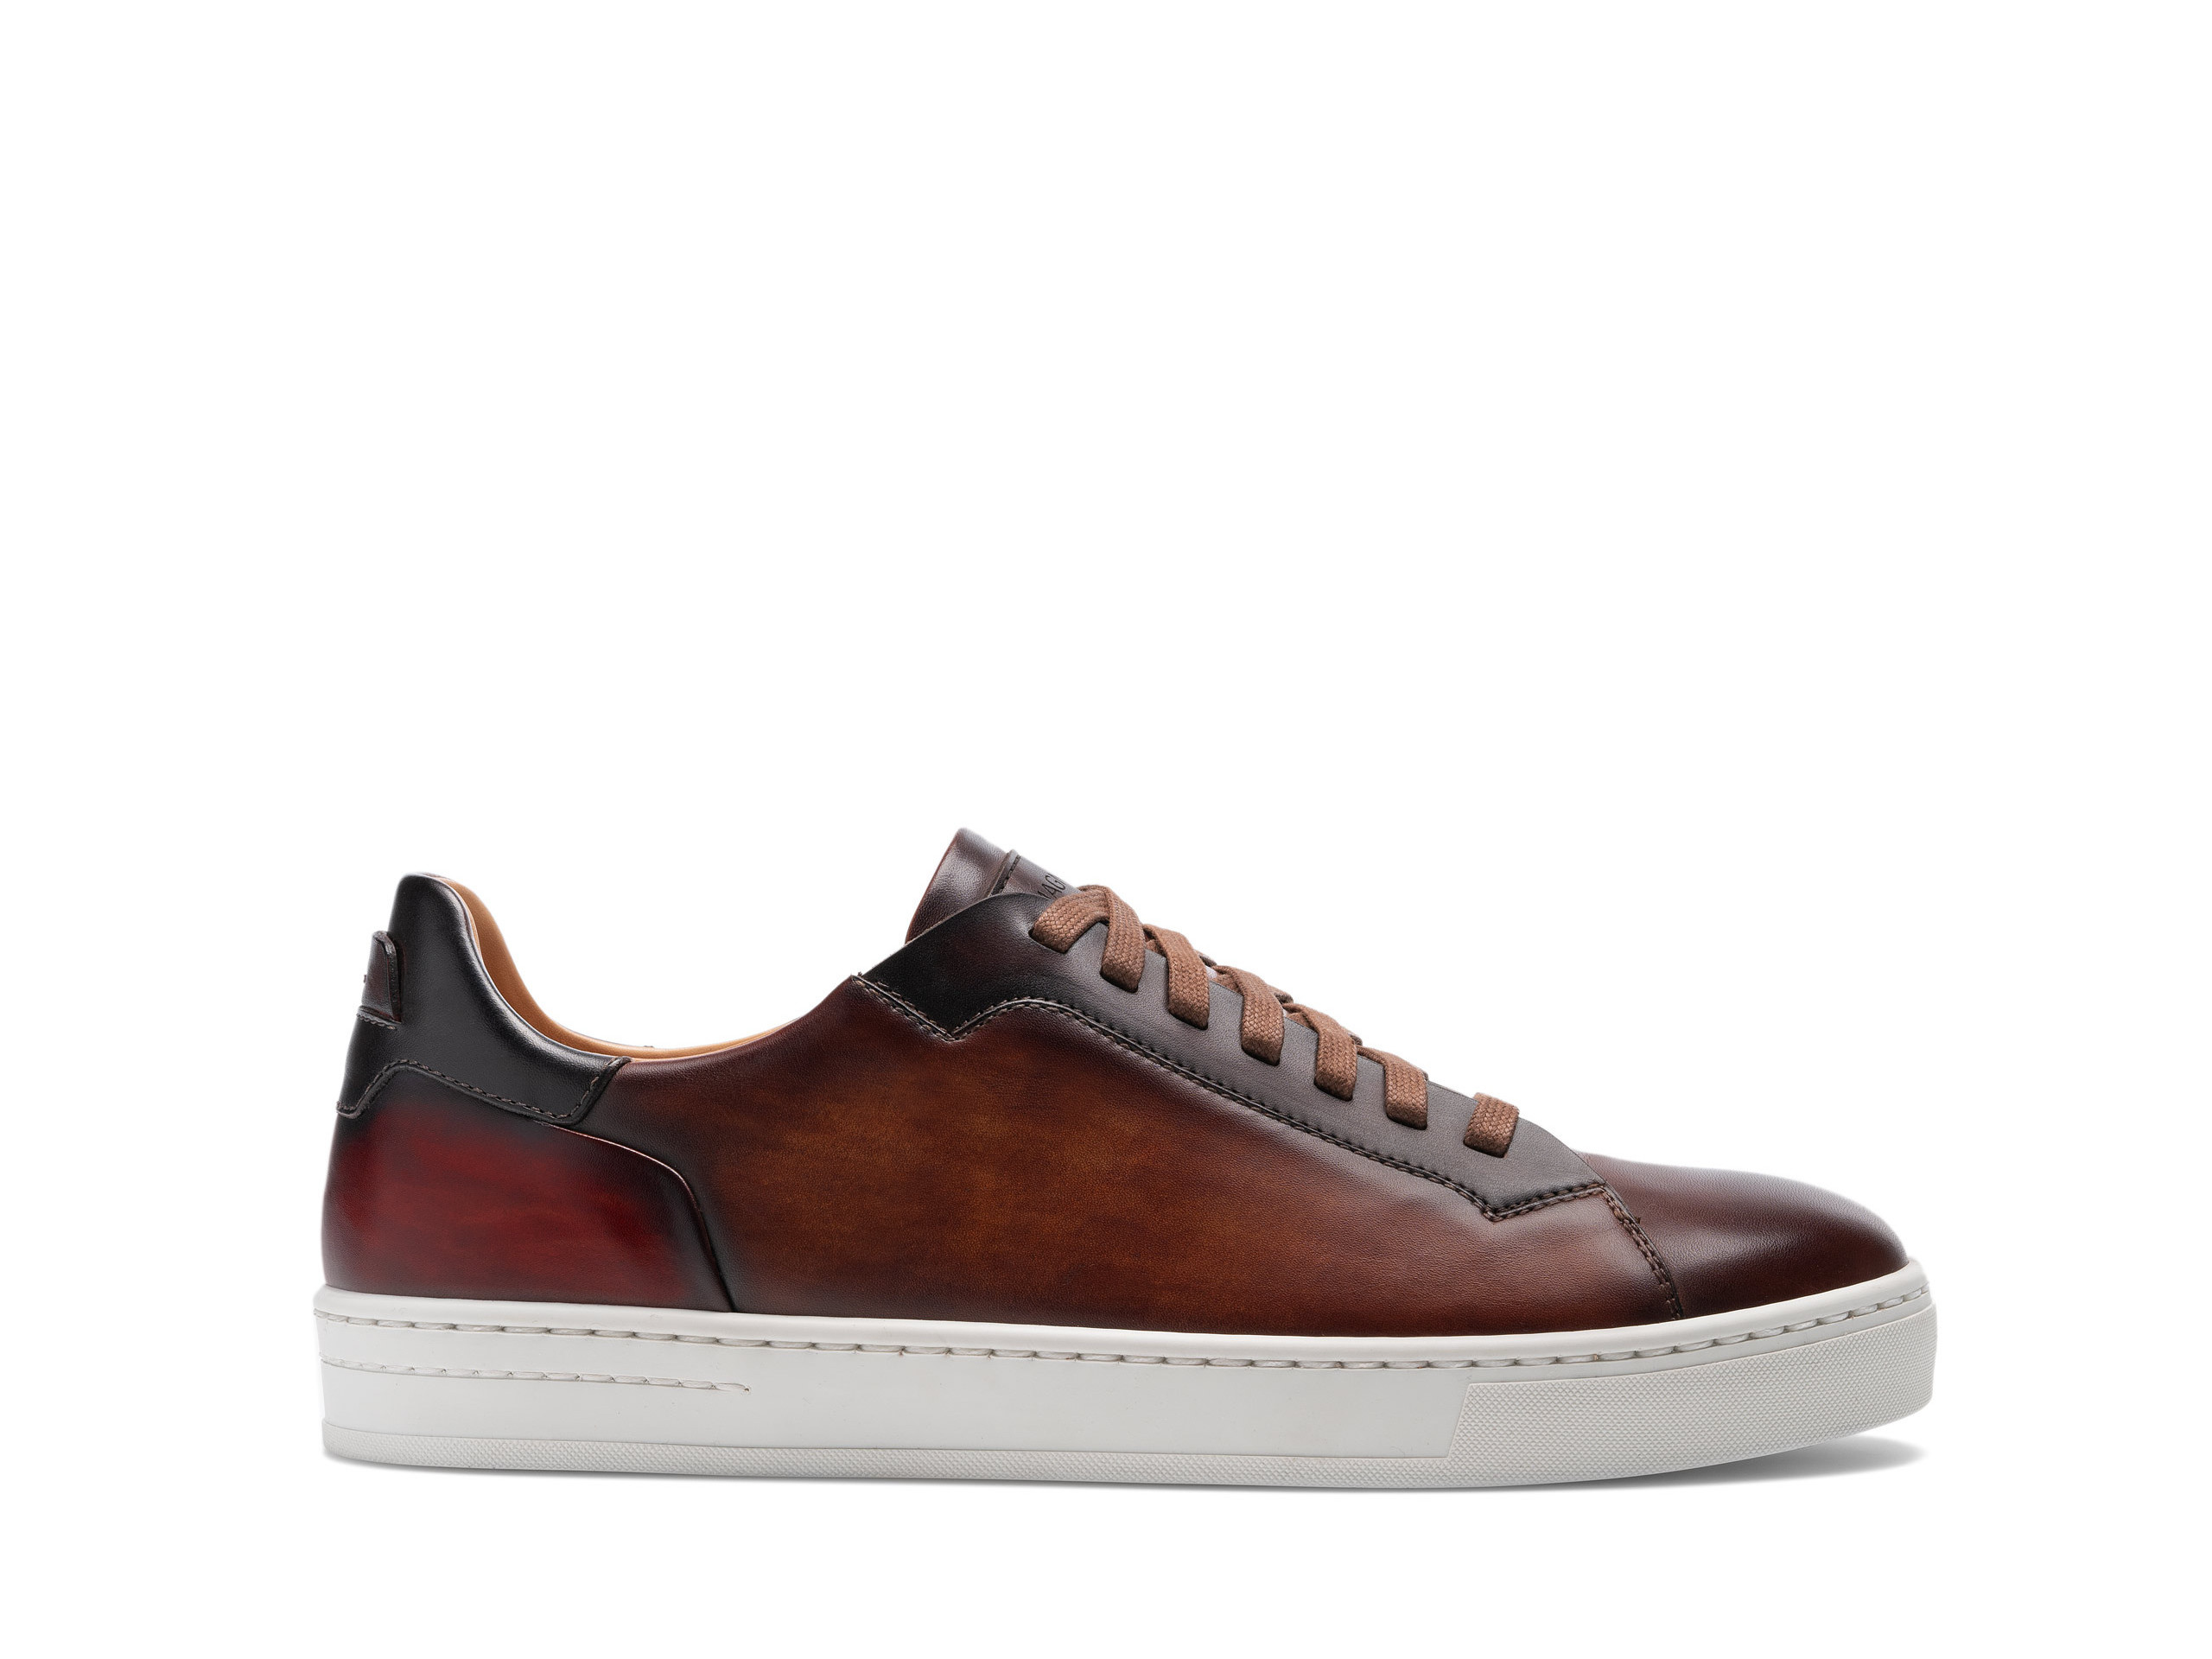 Side view of the Magnanni Amadeo Cognac Men's Sneakers